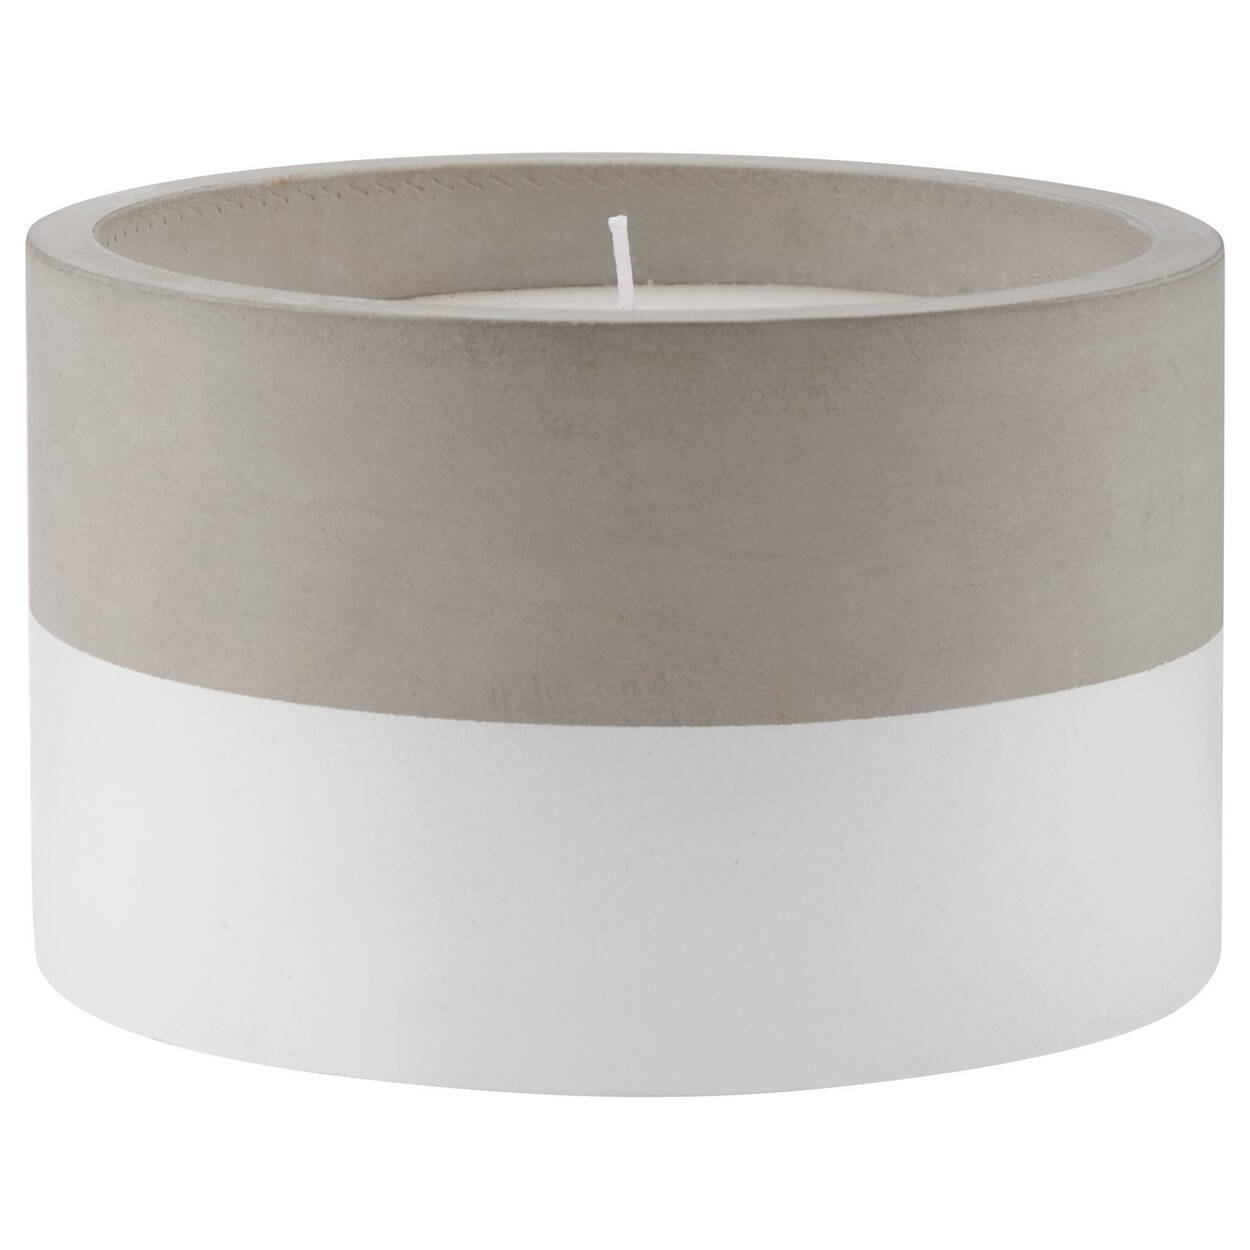 Two-Tone Cement Pot Candle